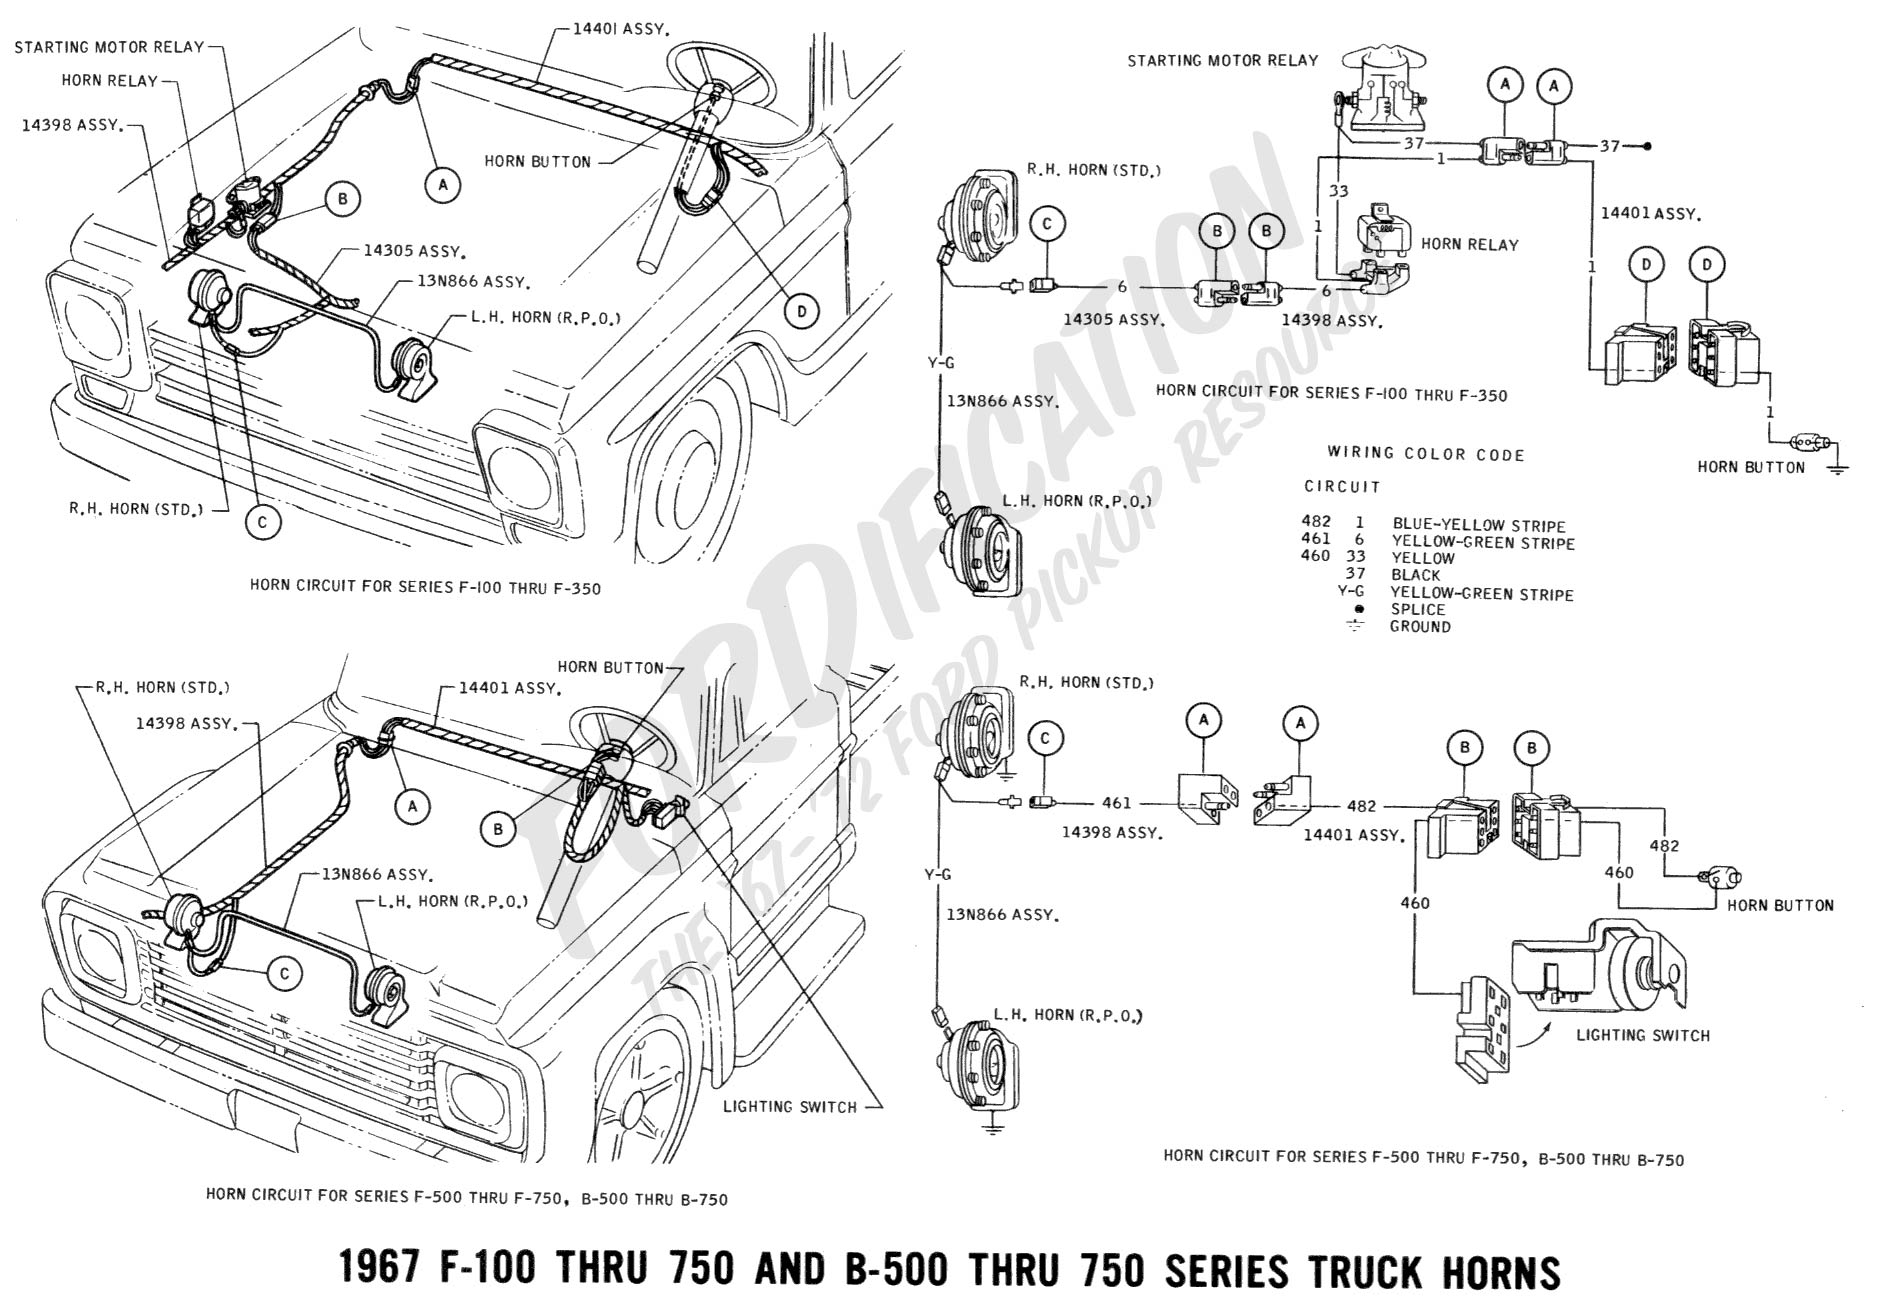 Wiper Switch Wiring Diagram Of A Marine further Wiring Harness Tape Automotive additionally Chrysler 3 9l Engine besides Parts For 1993 Dodge Ramcharger likewise 87 Mustang Fuse Block. on discussion c6707 ds682731